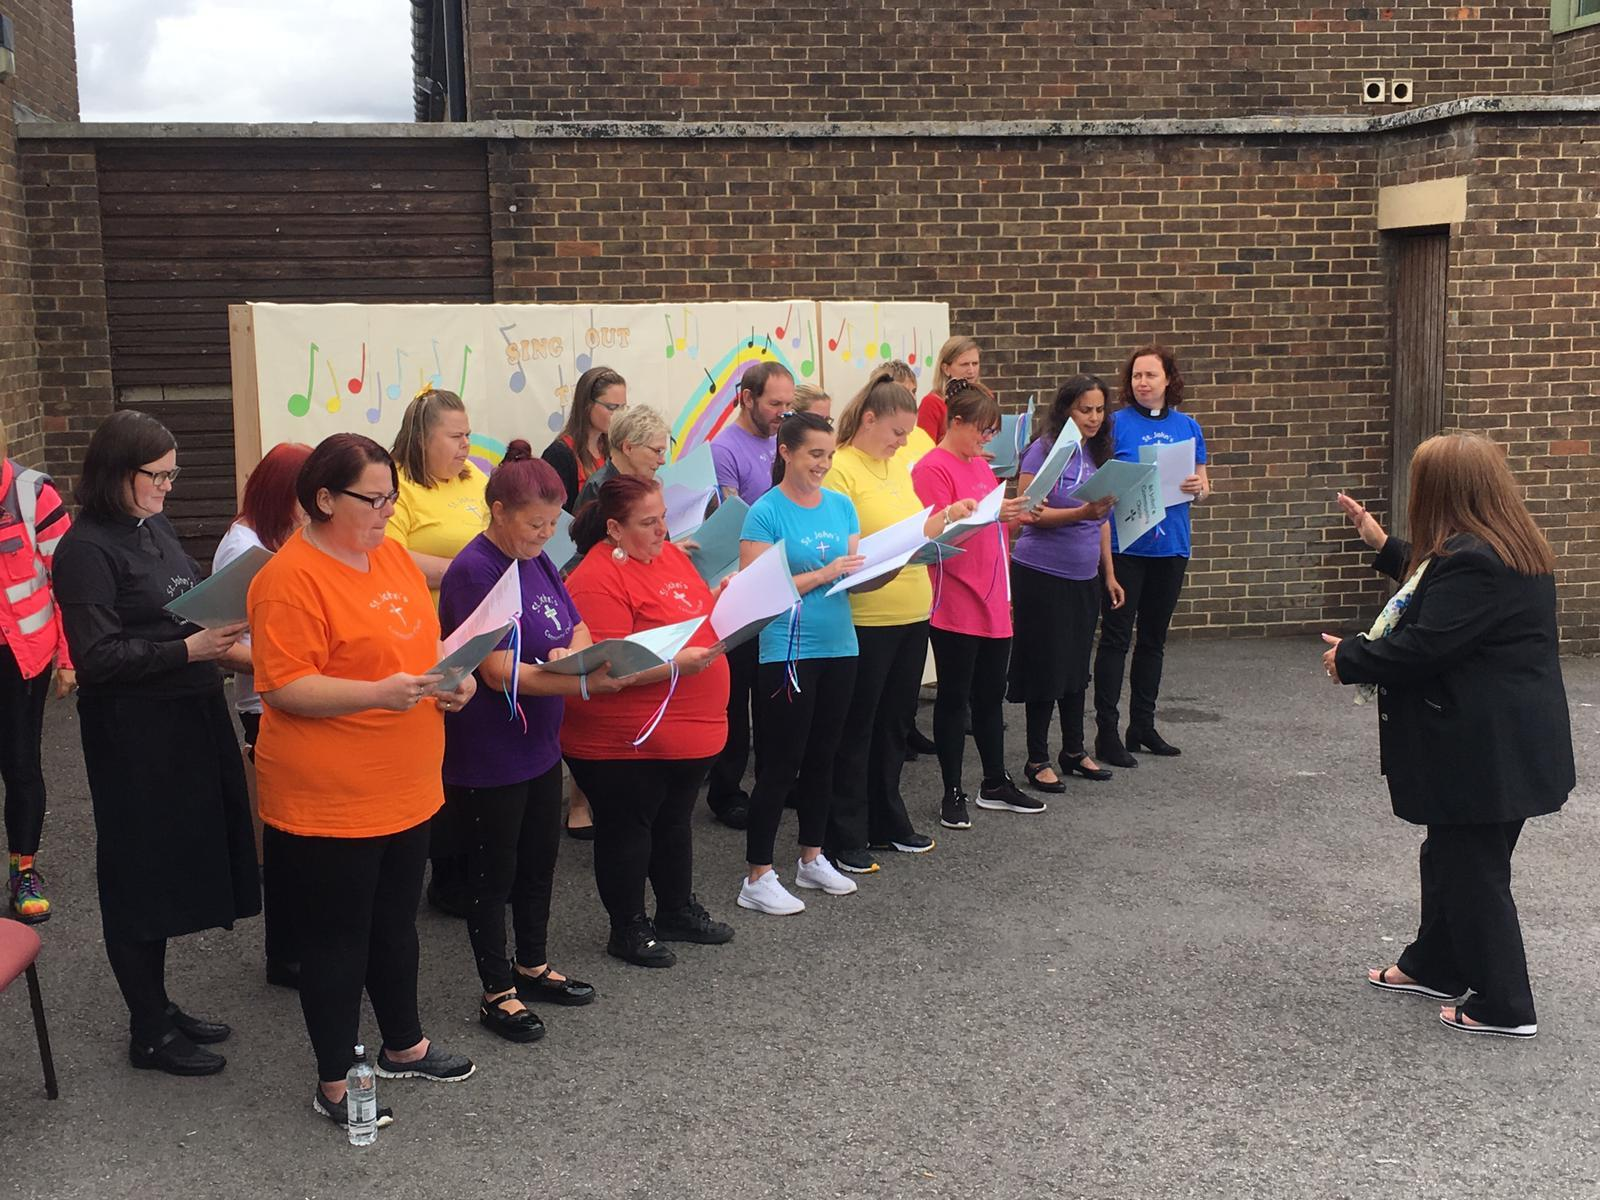 Swindon sing song celebration strikes the right note